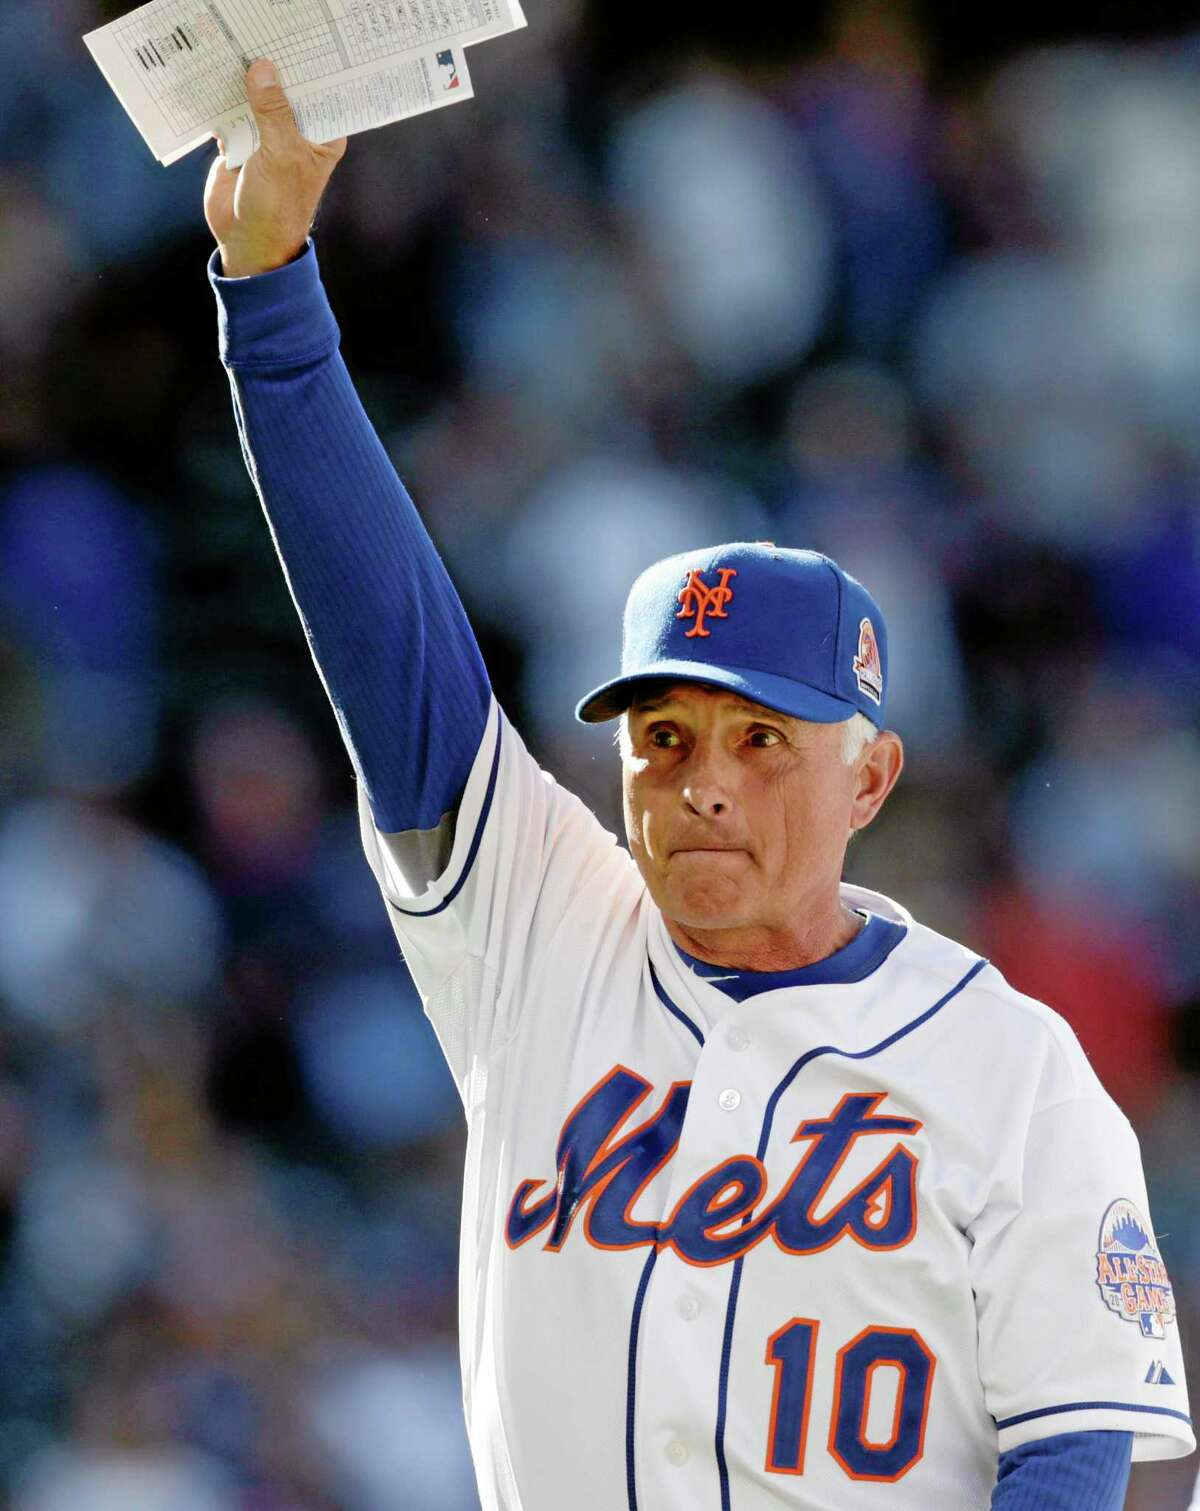 Mets manager Terry Collins (10) acknowledges the crowd after s 3-2 come-from-behind victory over the Milwaukee Brewers Sunday.